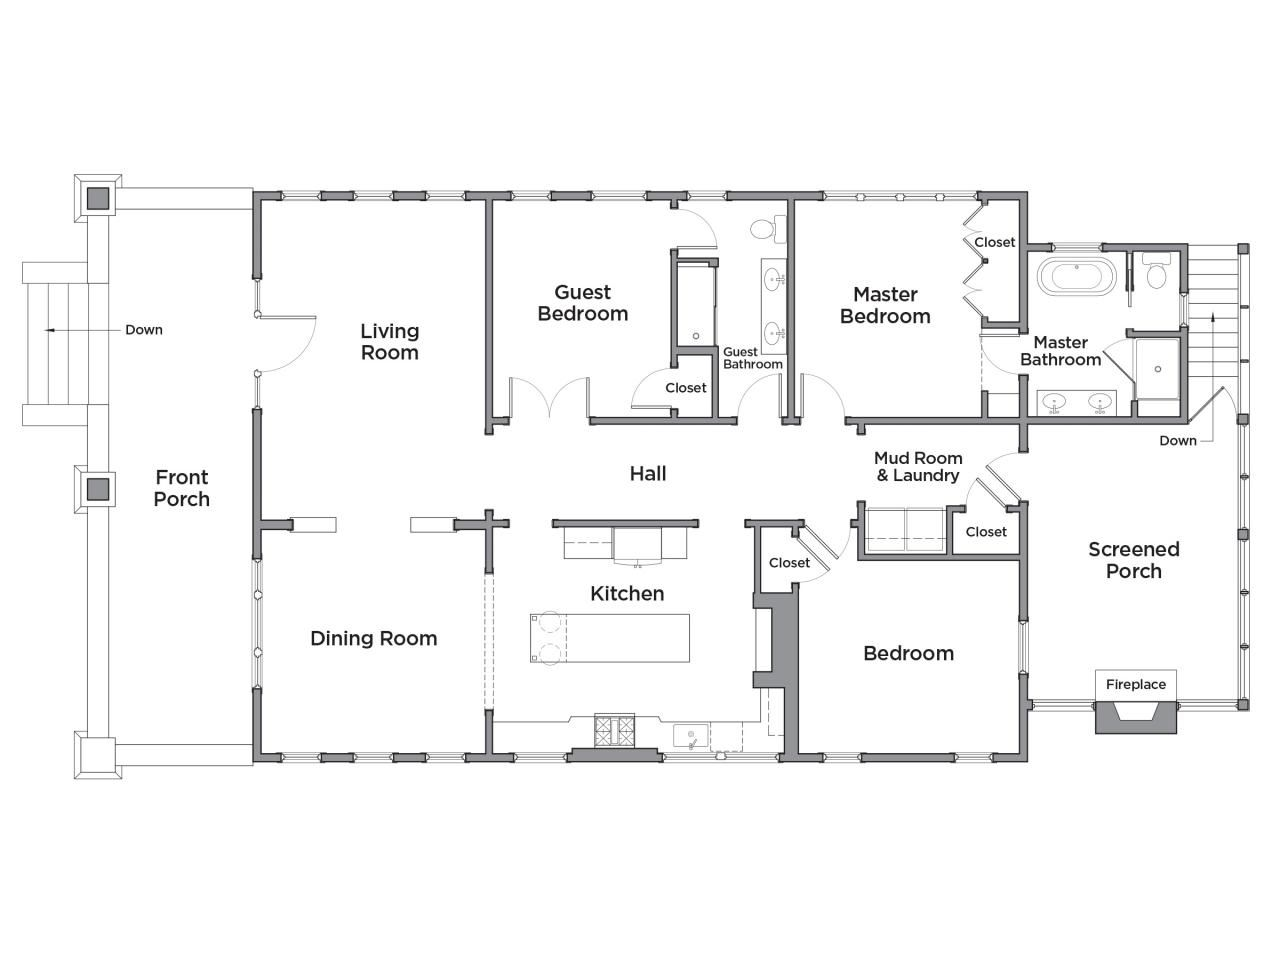 Discover The Floor Plan For Hgtv Urban Oasis 2017 Floor Plans House Plans House Floor Plans